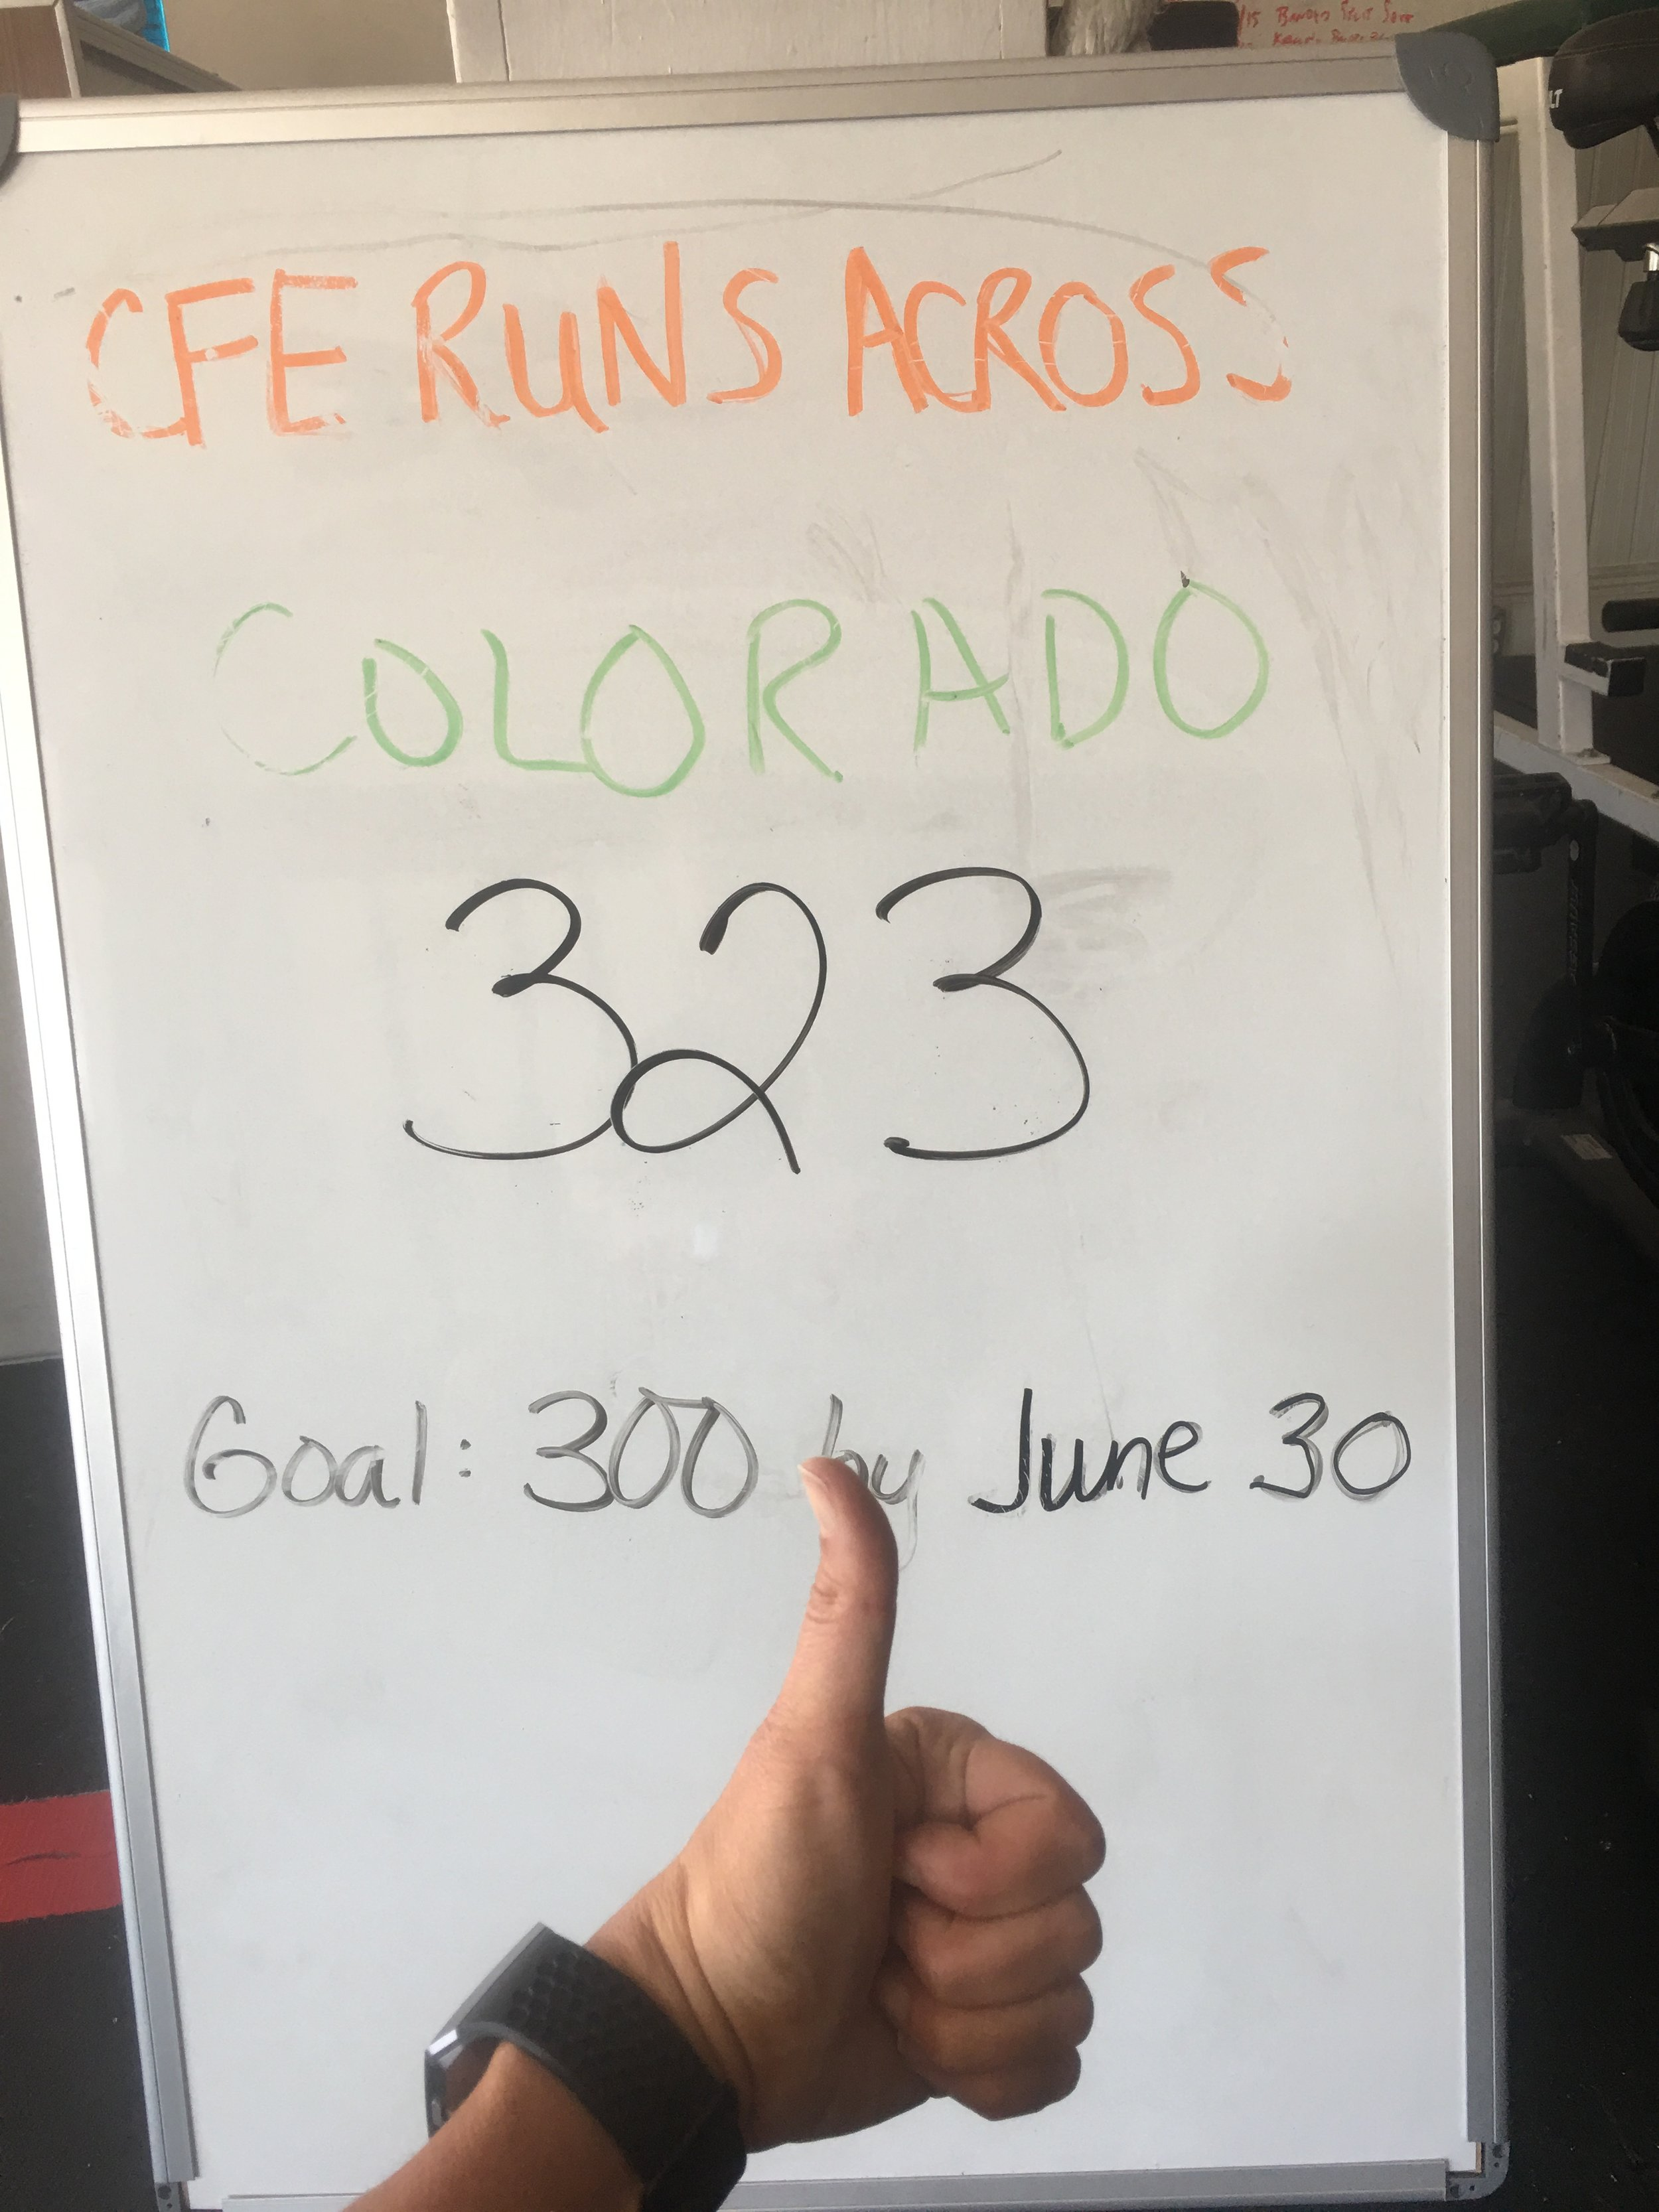 We made it! We surpassed our goal of running across Colorado! Way to go CFE!  New month=new challenge!